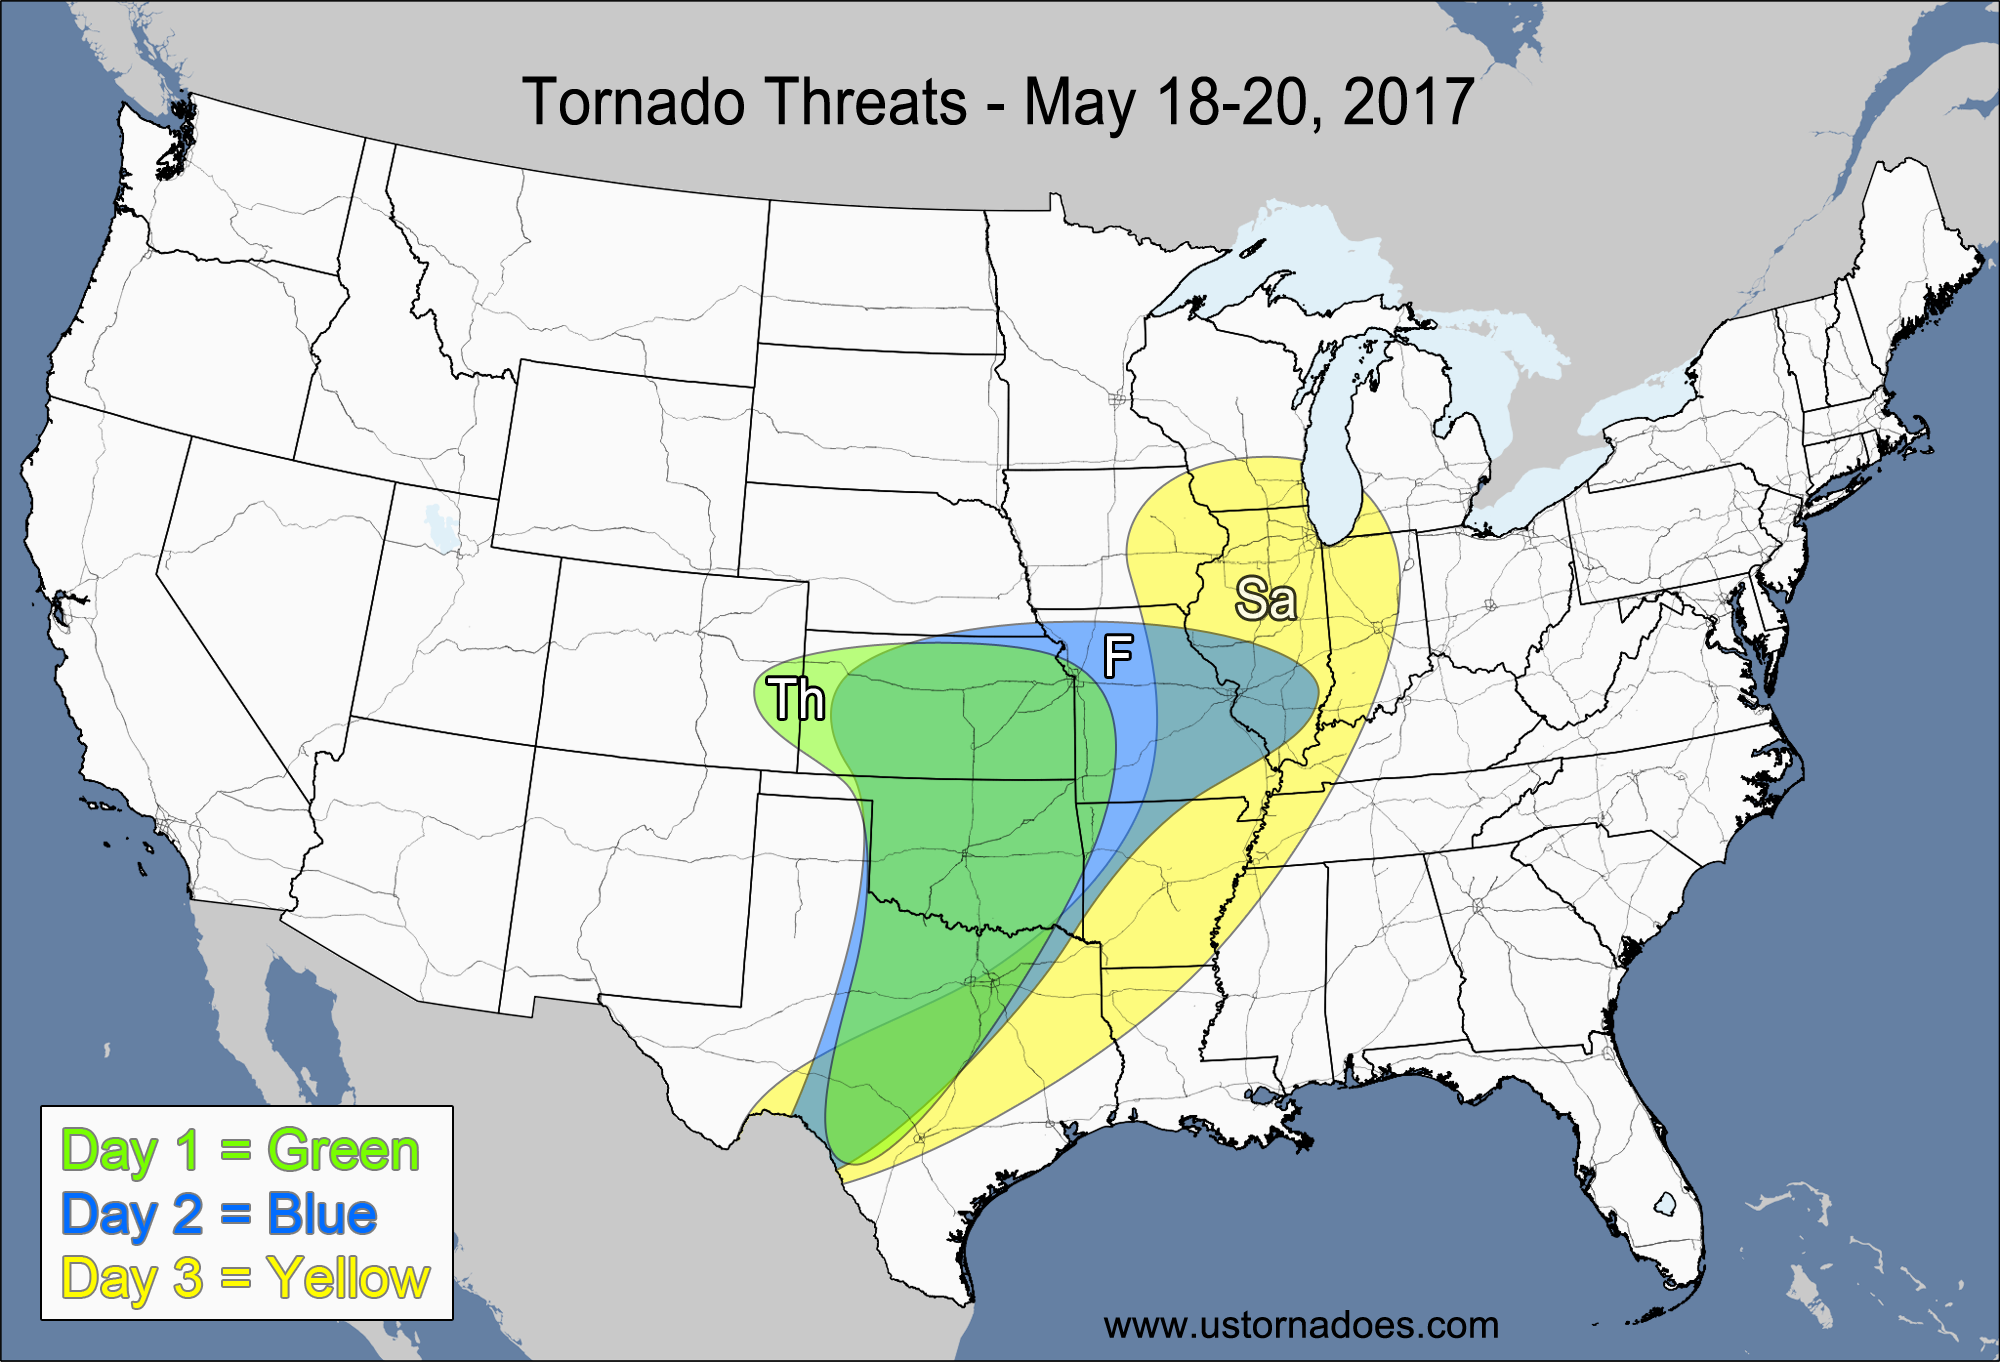 tornado threat forecast may 18 24 2017 u s tornadoes